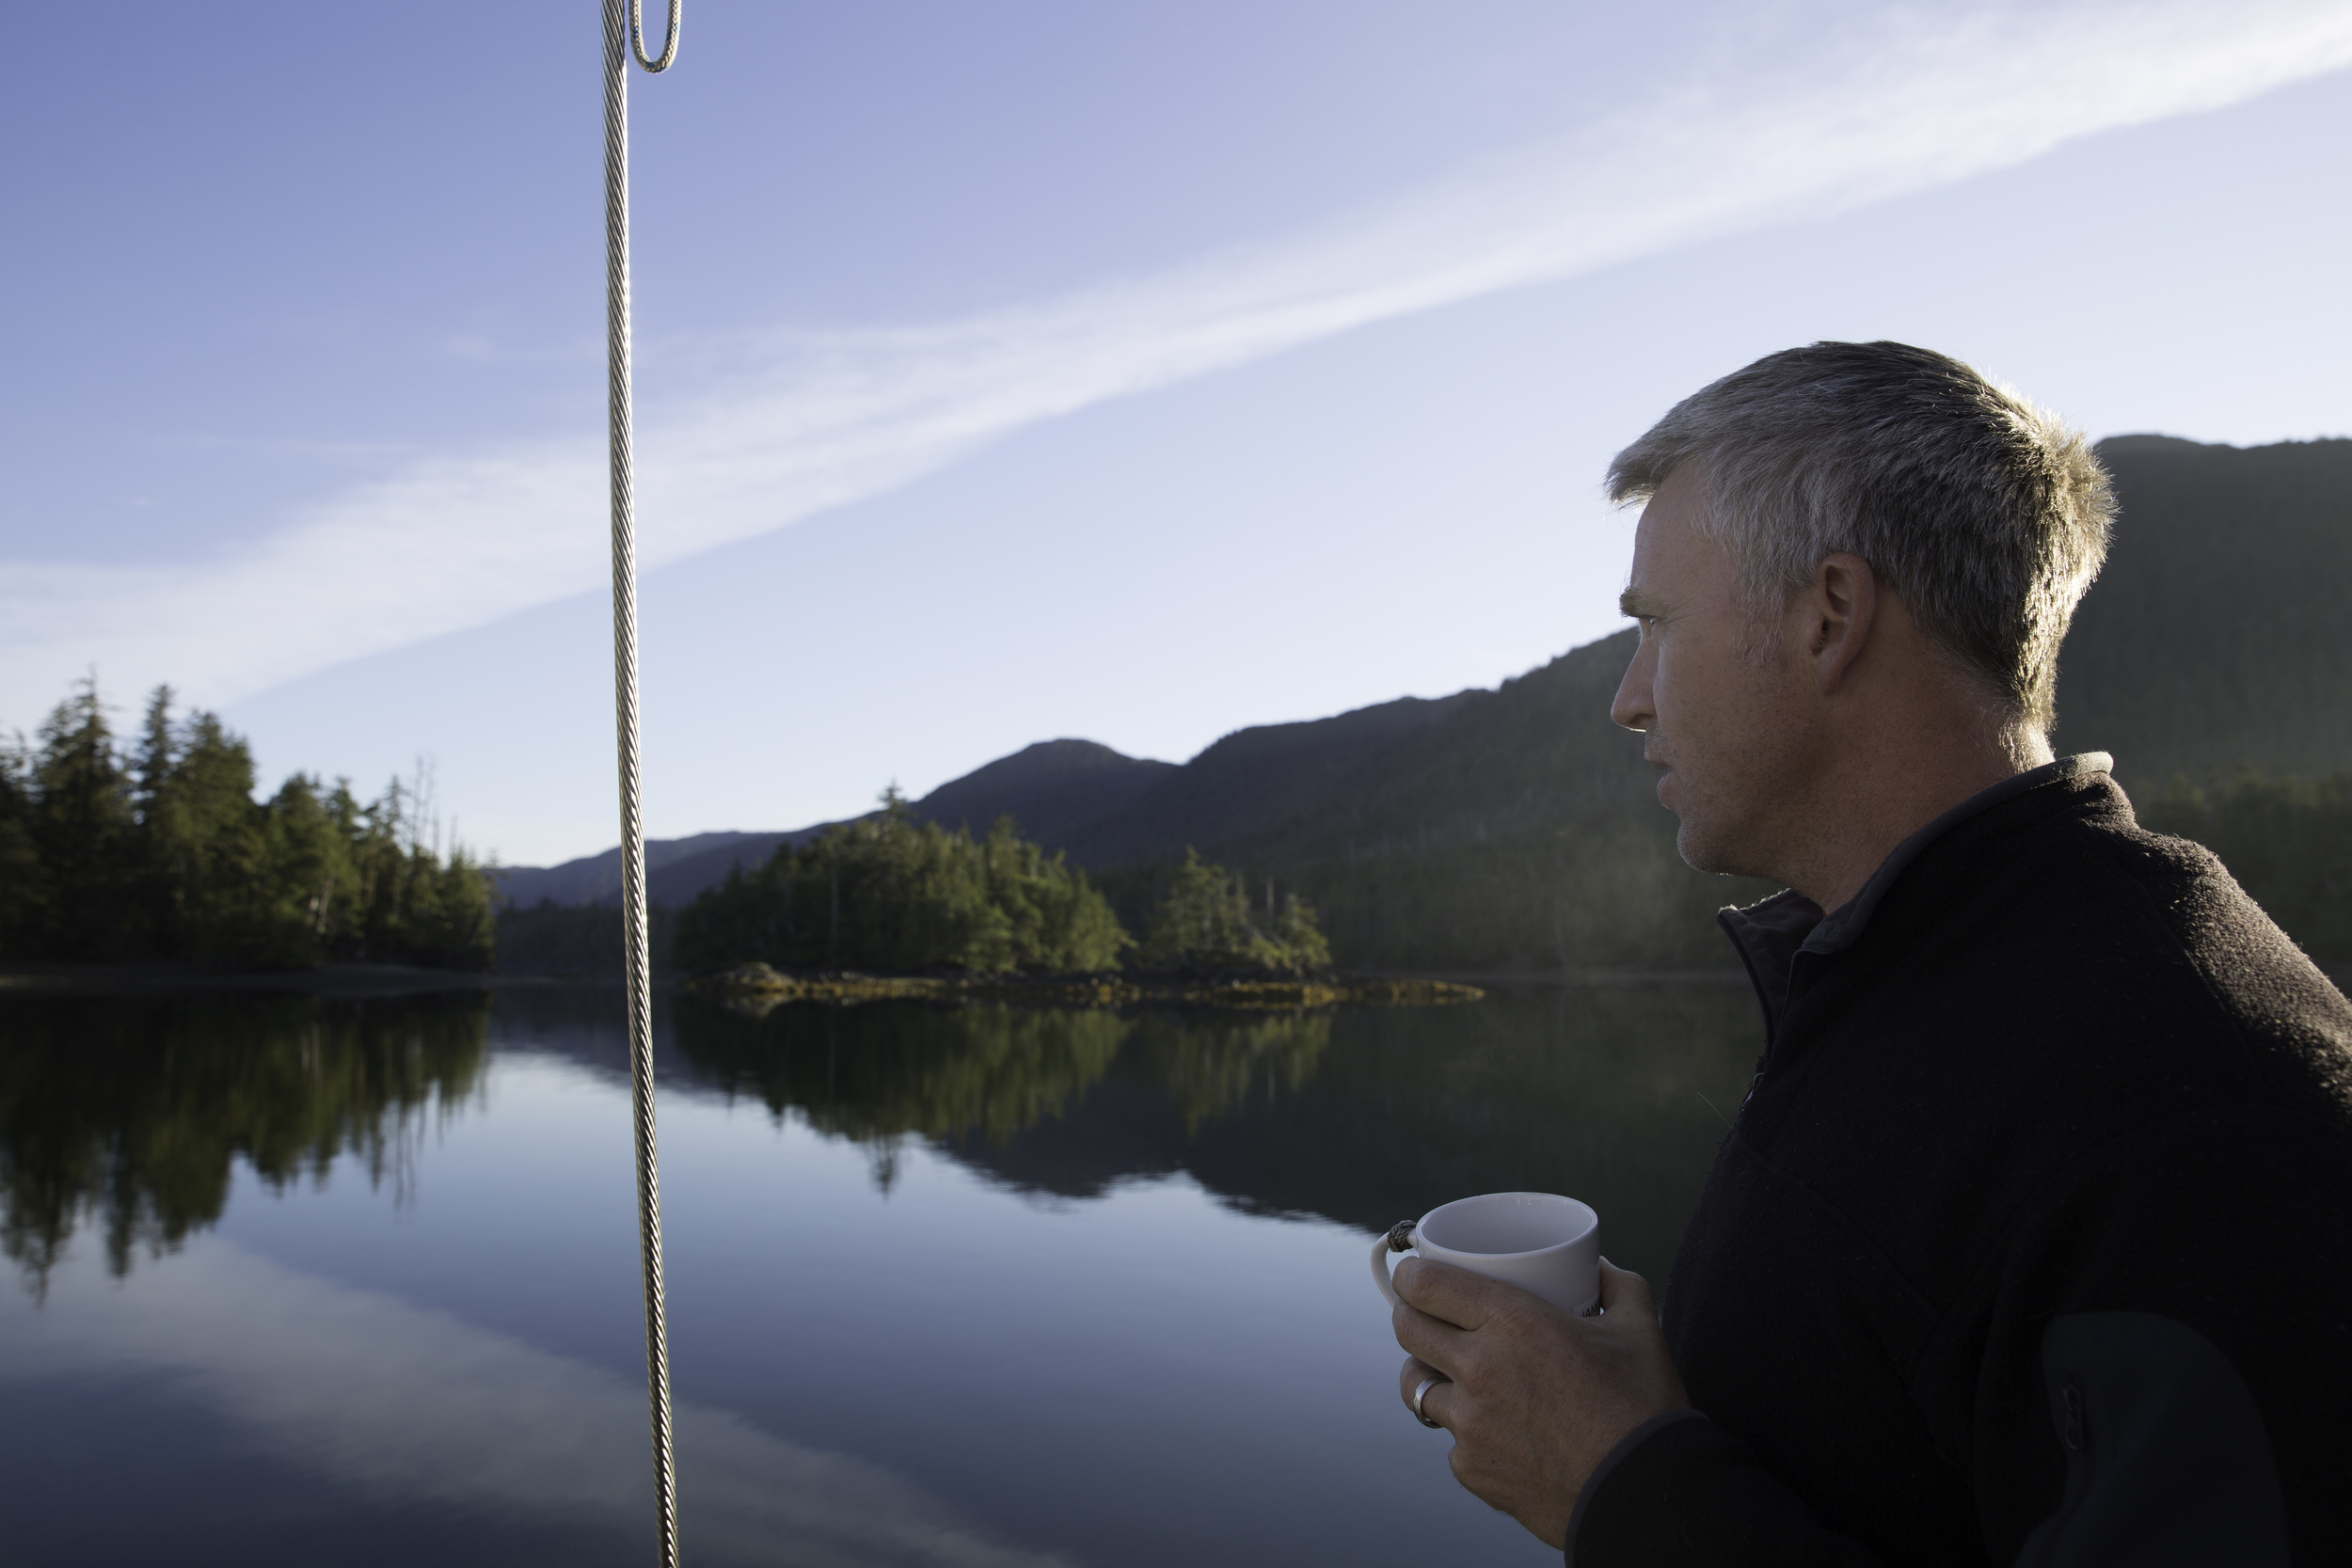 James sips a cup of coffee and complains about the view.